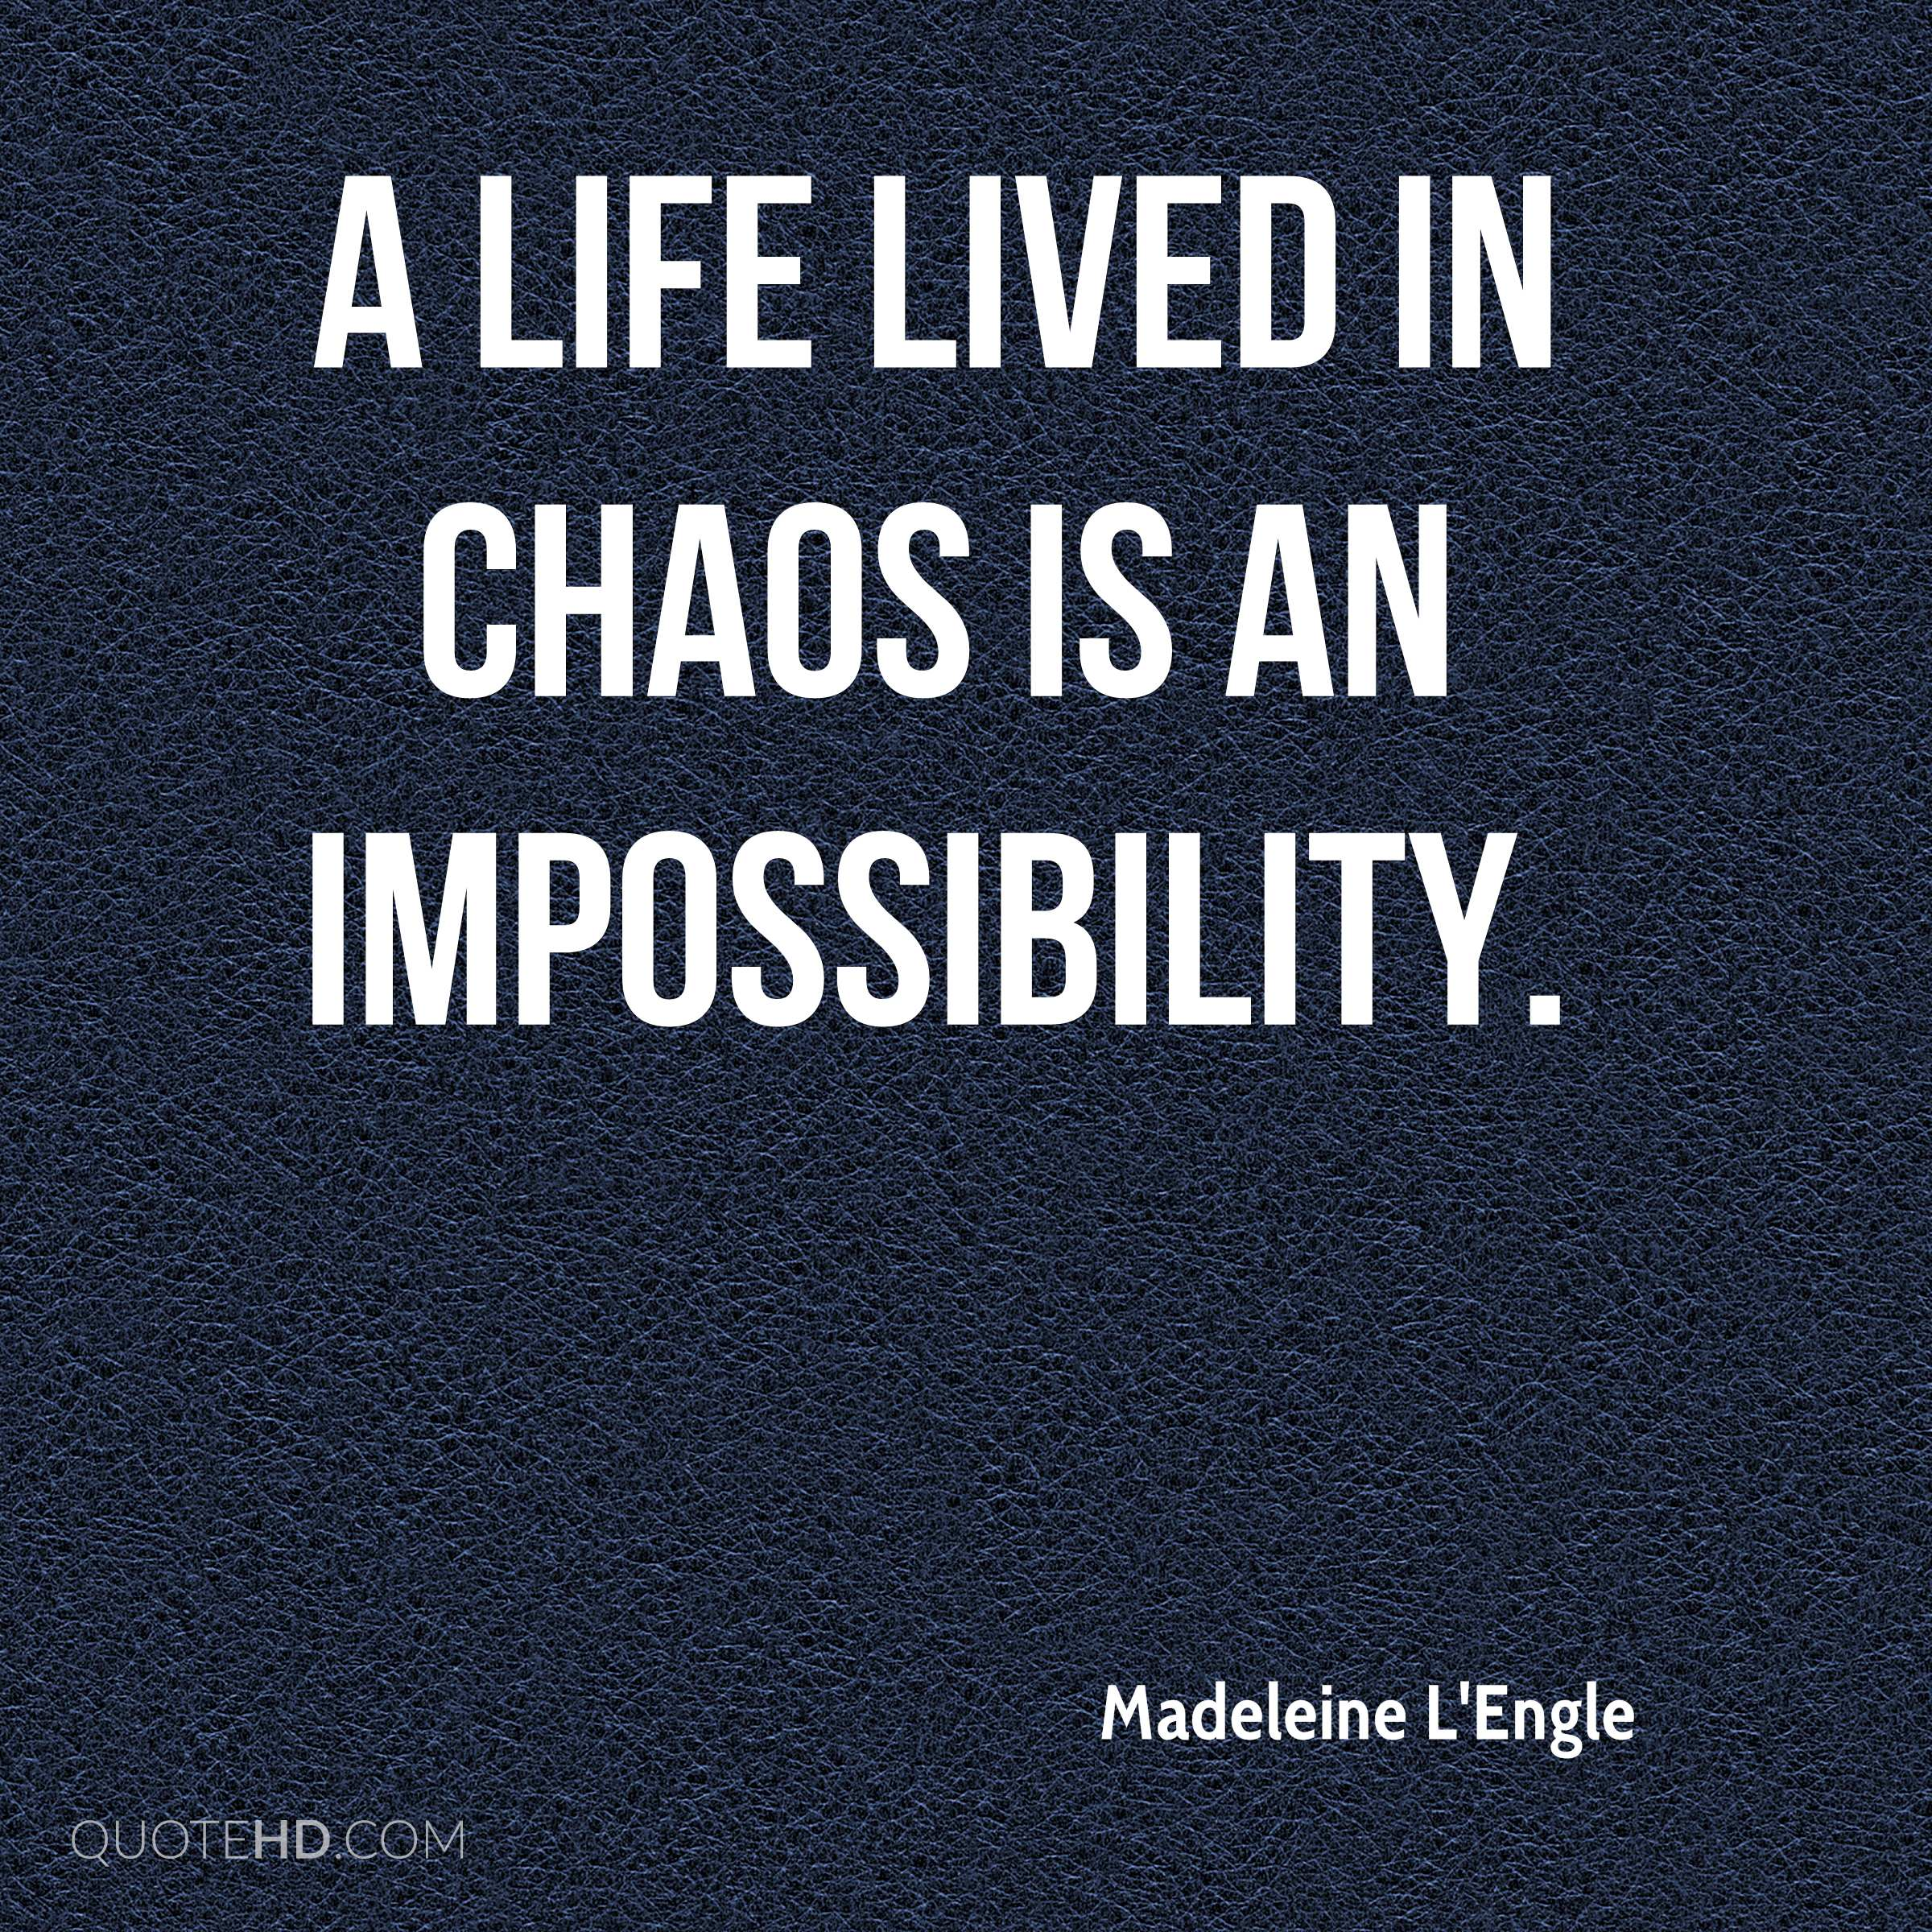 A life lived in chaos is an impossibility.